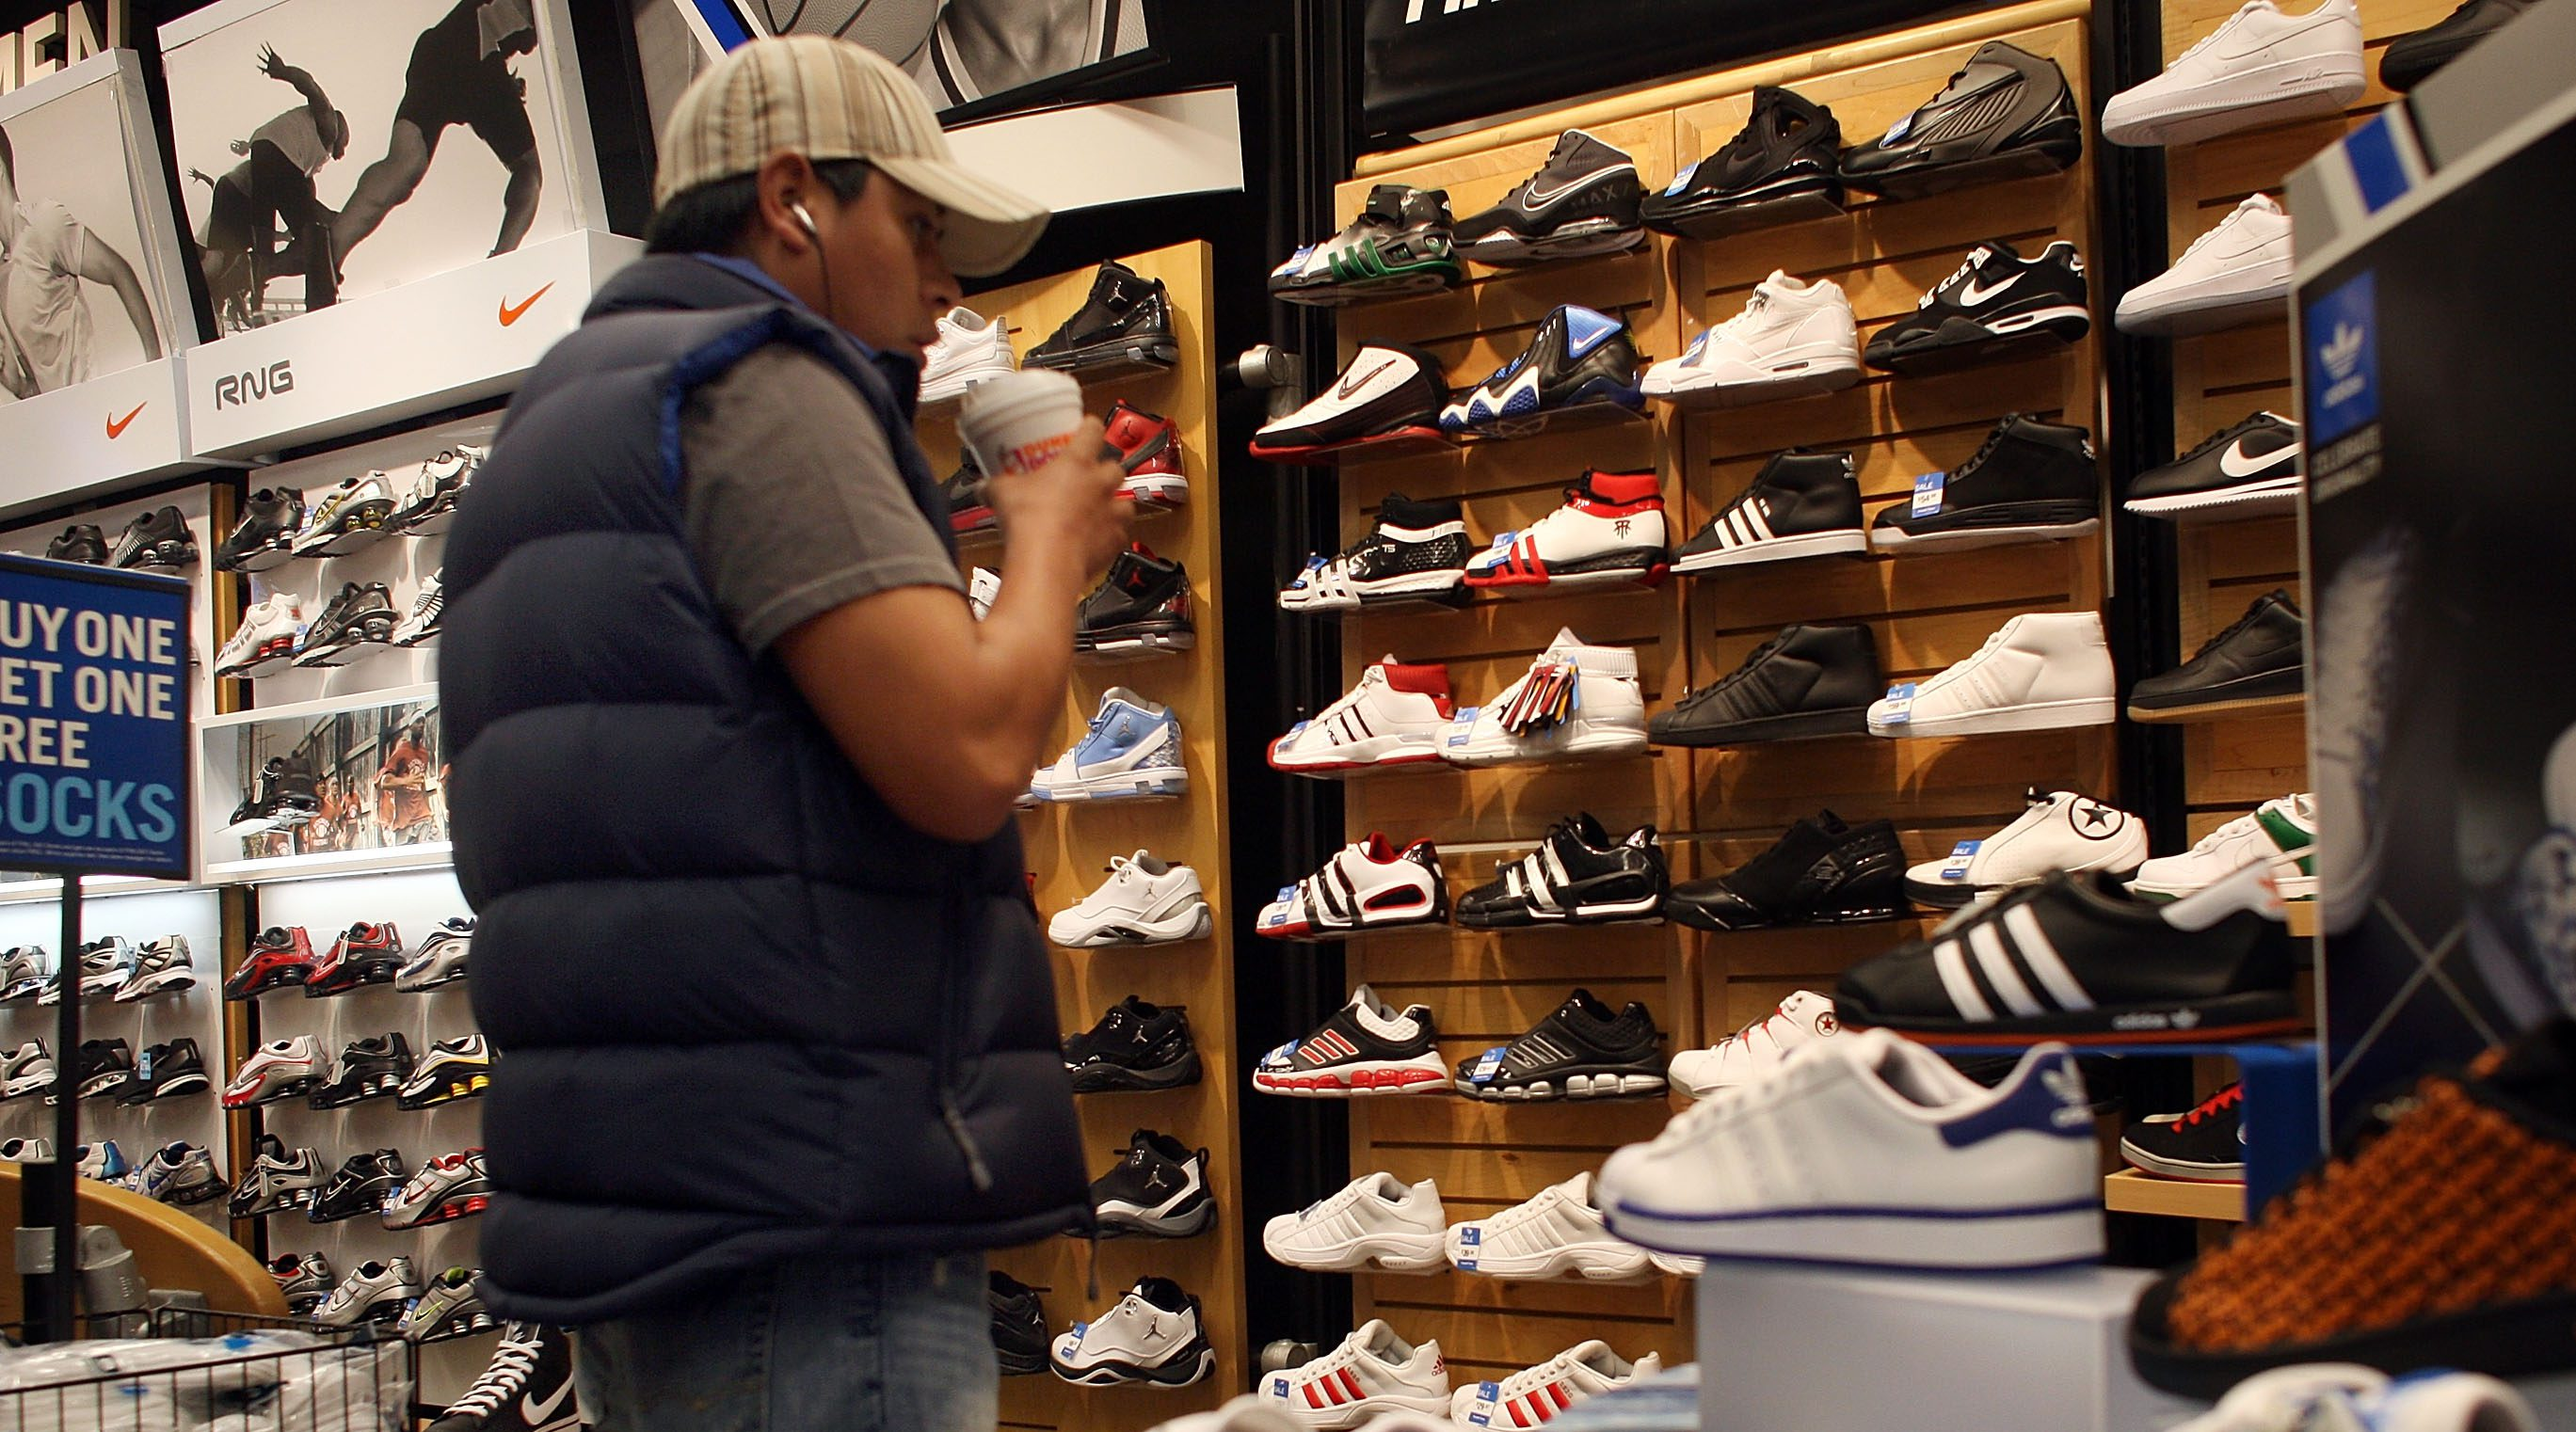 STAMFORD, CT - MARCH 27: A man shops for sneakers March 27, 2009 in Stamford, Connecticut. A government report released on Friday shows that consumer spending rose slightly for the second consecutive month in February. The Commerce Department said purchases advanced 0.2 percent in February after climbing 1 percent in January.  (Photo by Spencer Platt/Getty Images)